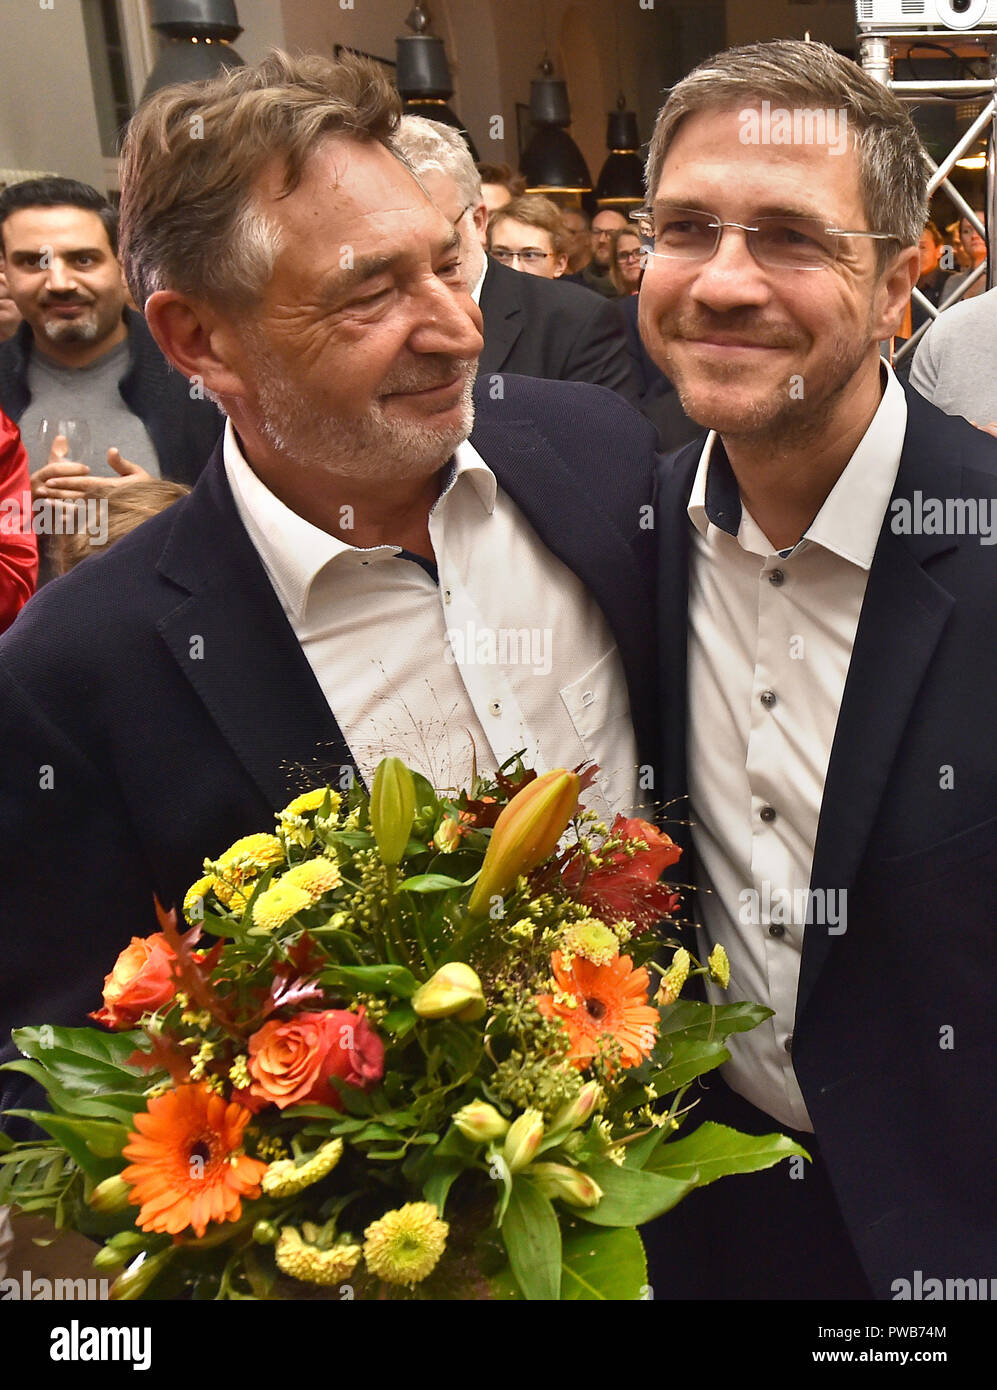 Potsdam, Brandenburg. 14th Oct, 2018. 14 October 2018, Germany, Potsdam: Jann Jakobs (SPD), Lord Mayor of Potsdam, congratulates Mike Schubert (SPD) on his victory at the election party. Schubert was elected new Lord Mayor with 55.3 percent of the votes. Credit: Bernd Settnik/dpa-Zen tralbild/dpa/Alamy Live News - Stock Image